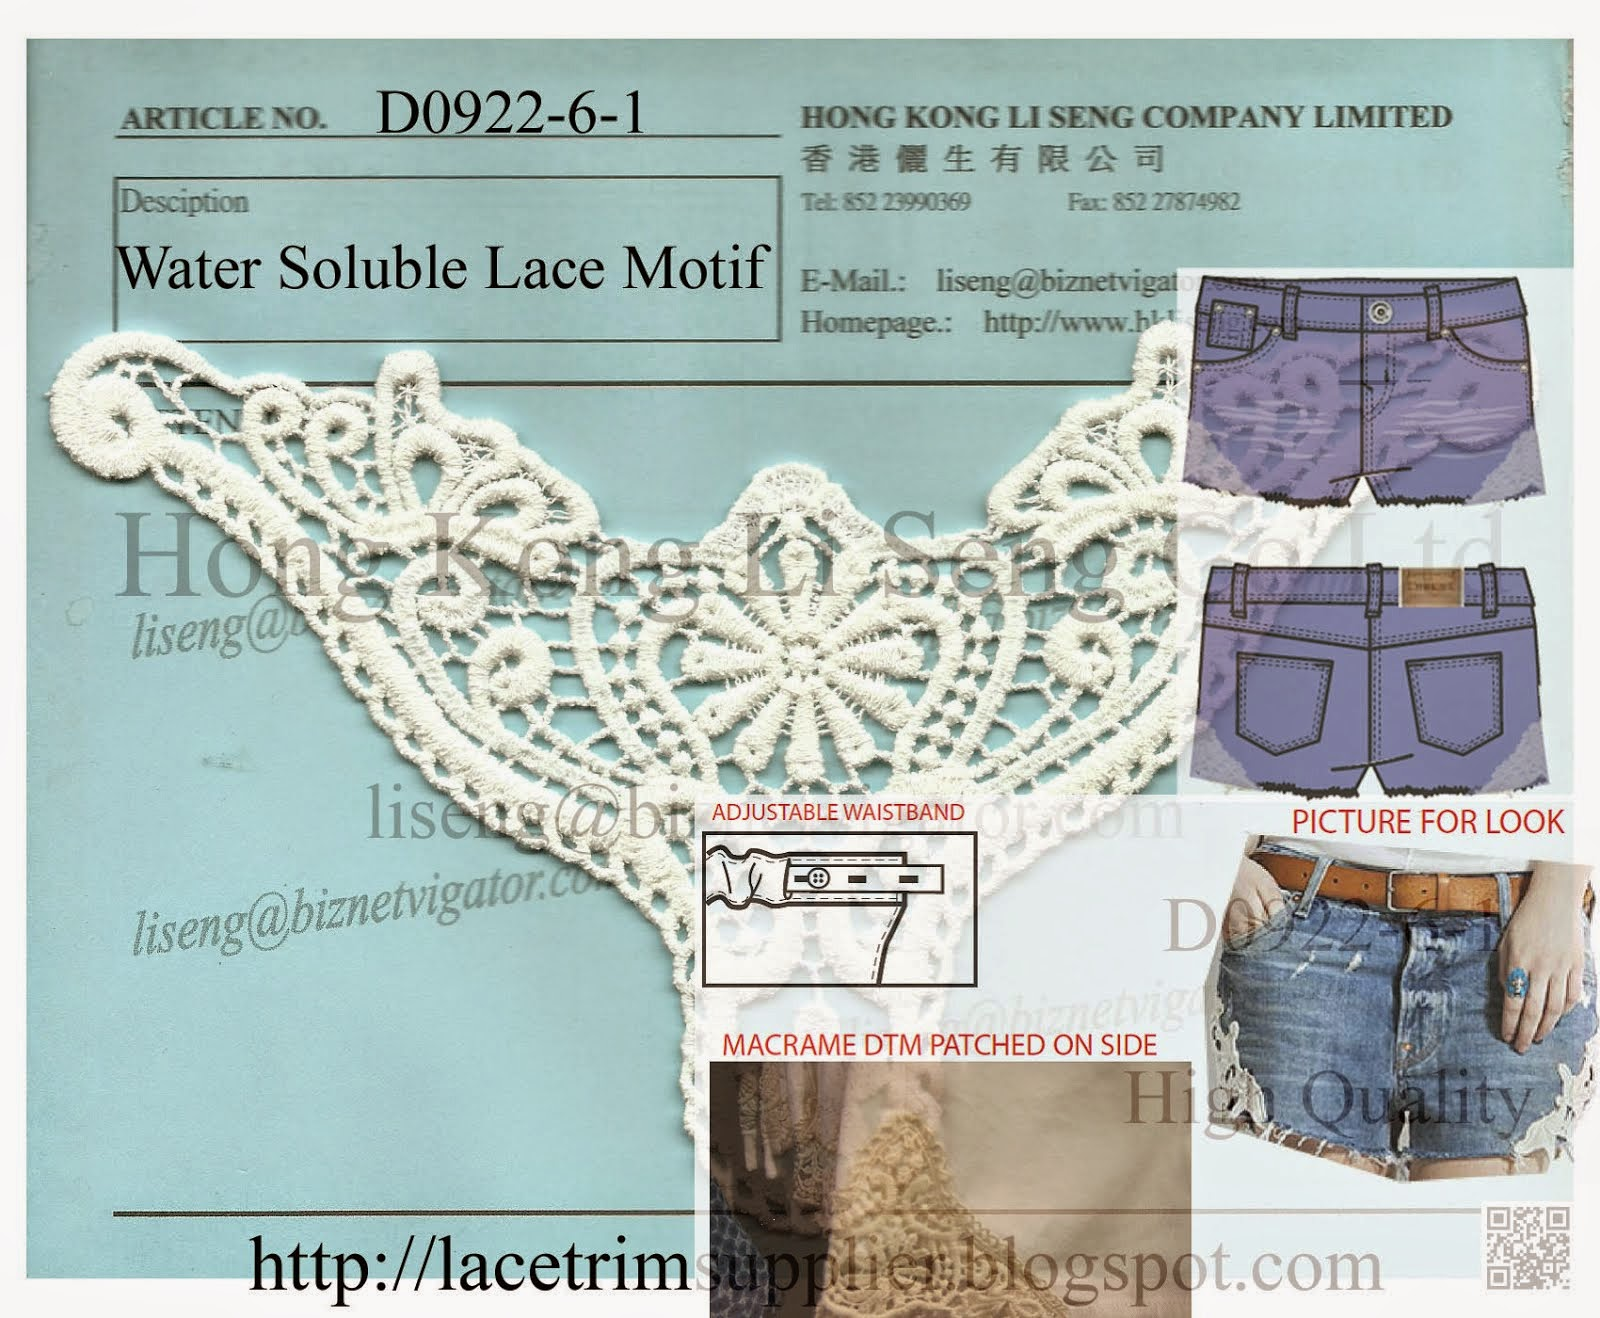 Hot Pants Lace Motif Manufacturer